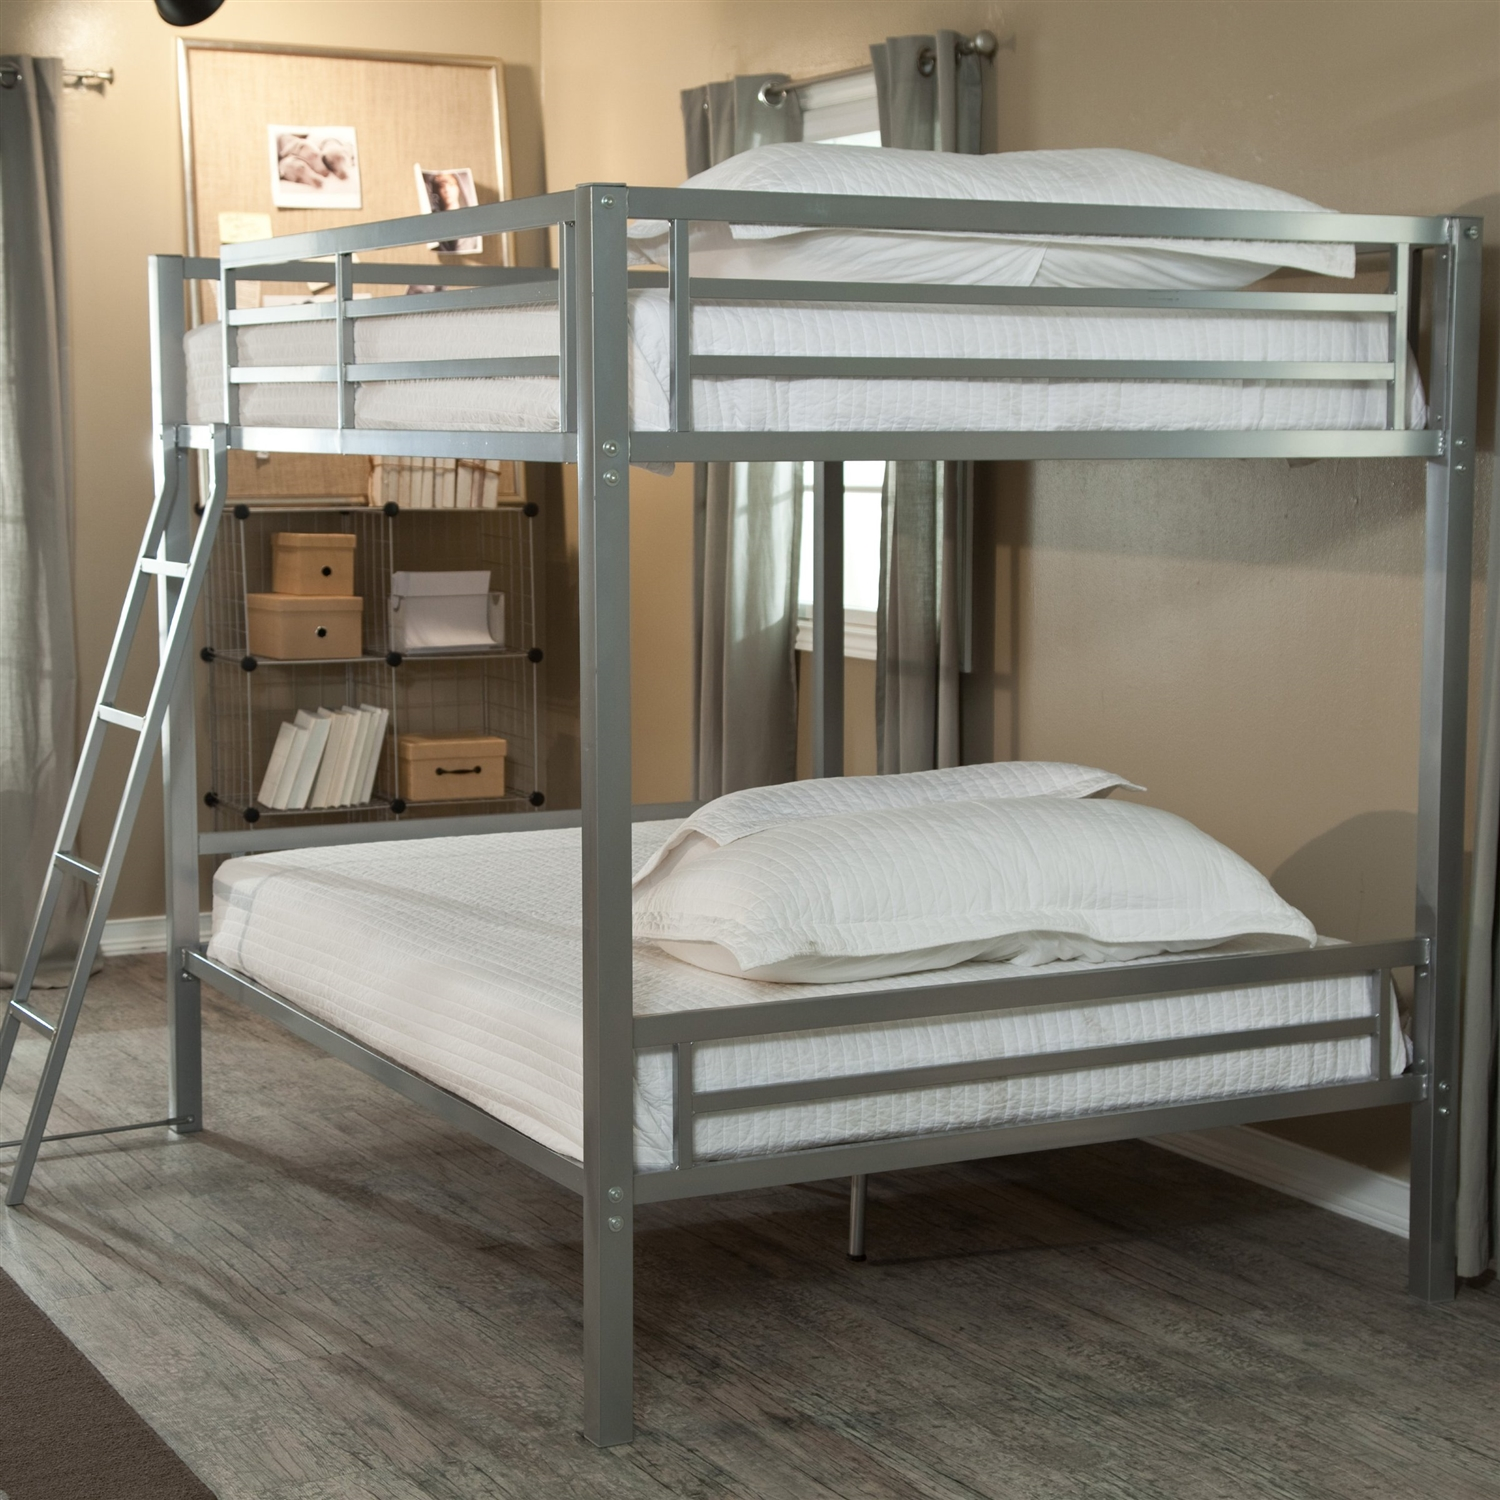 Metal bunk beds full over full - Full Over Full Size Bunk Bed With Ladder In Silver Metal Finish